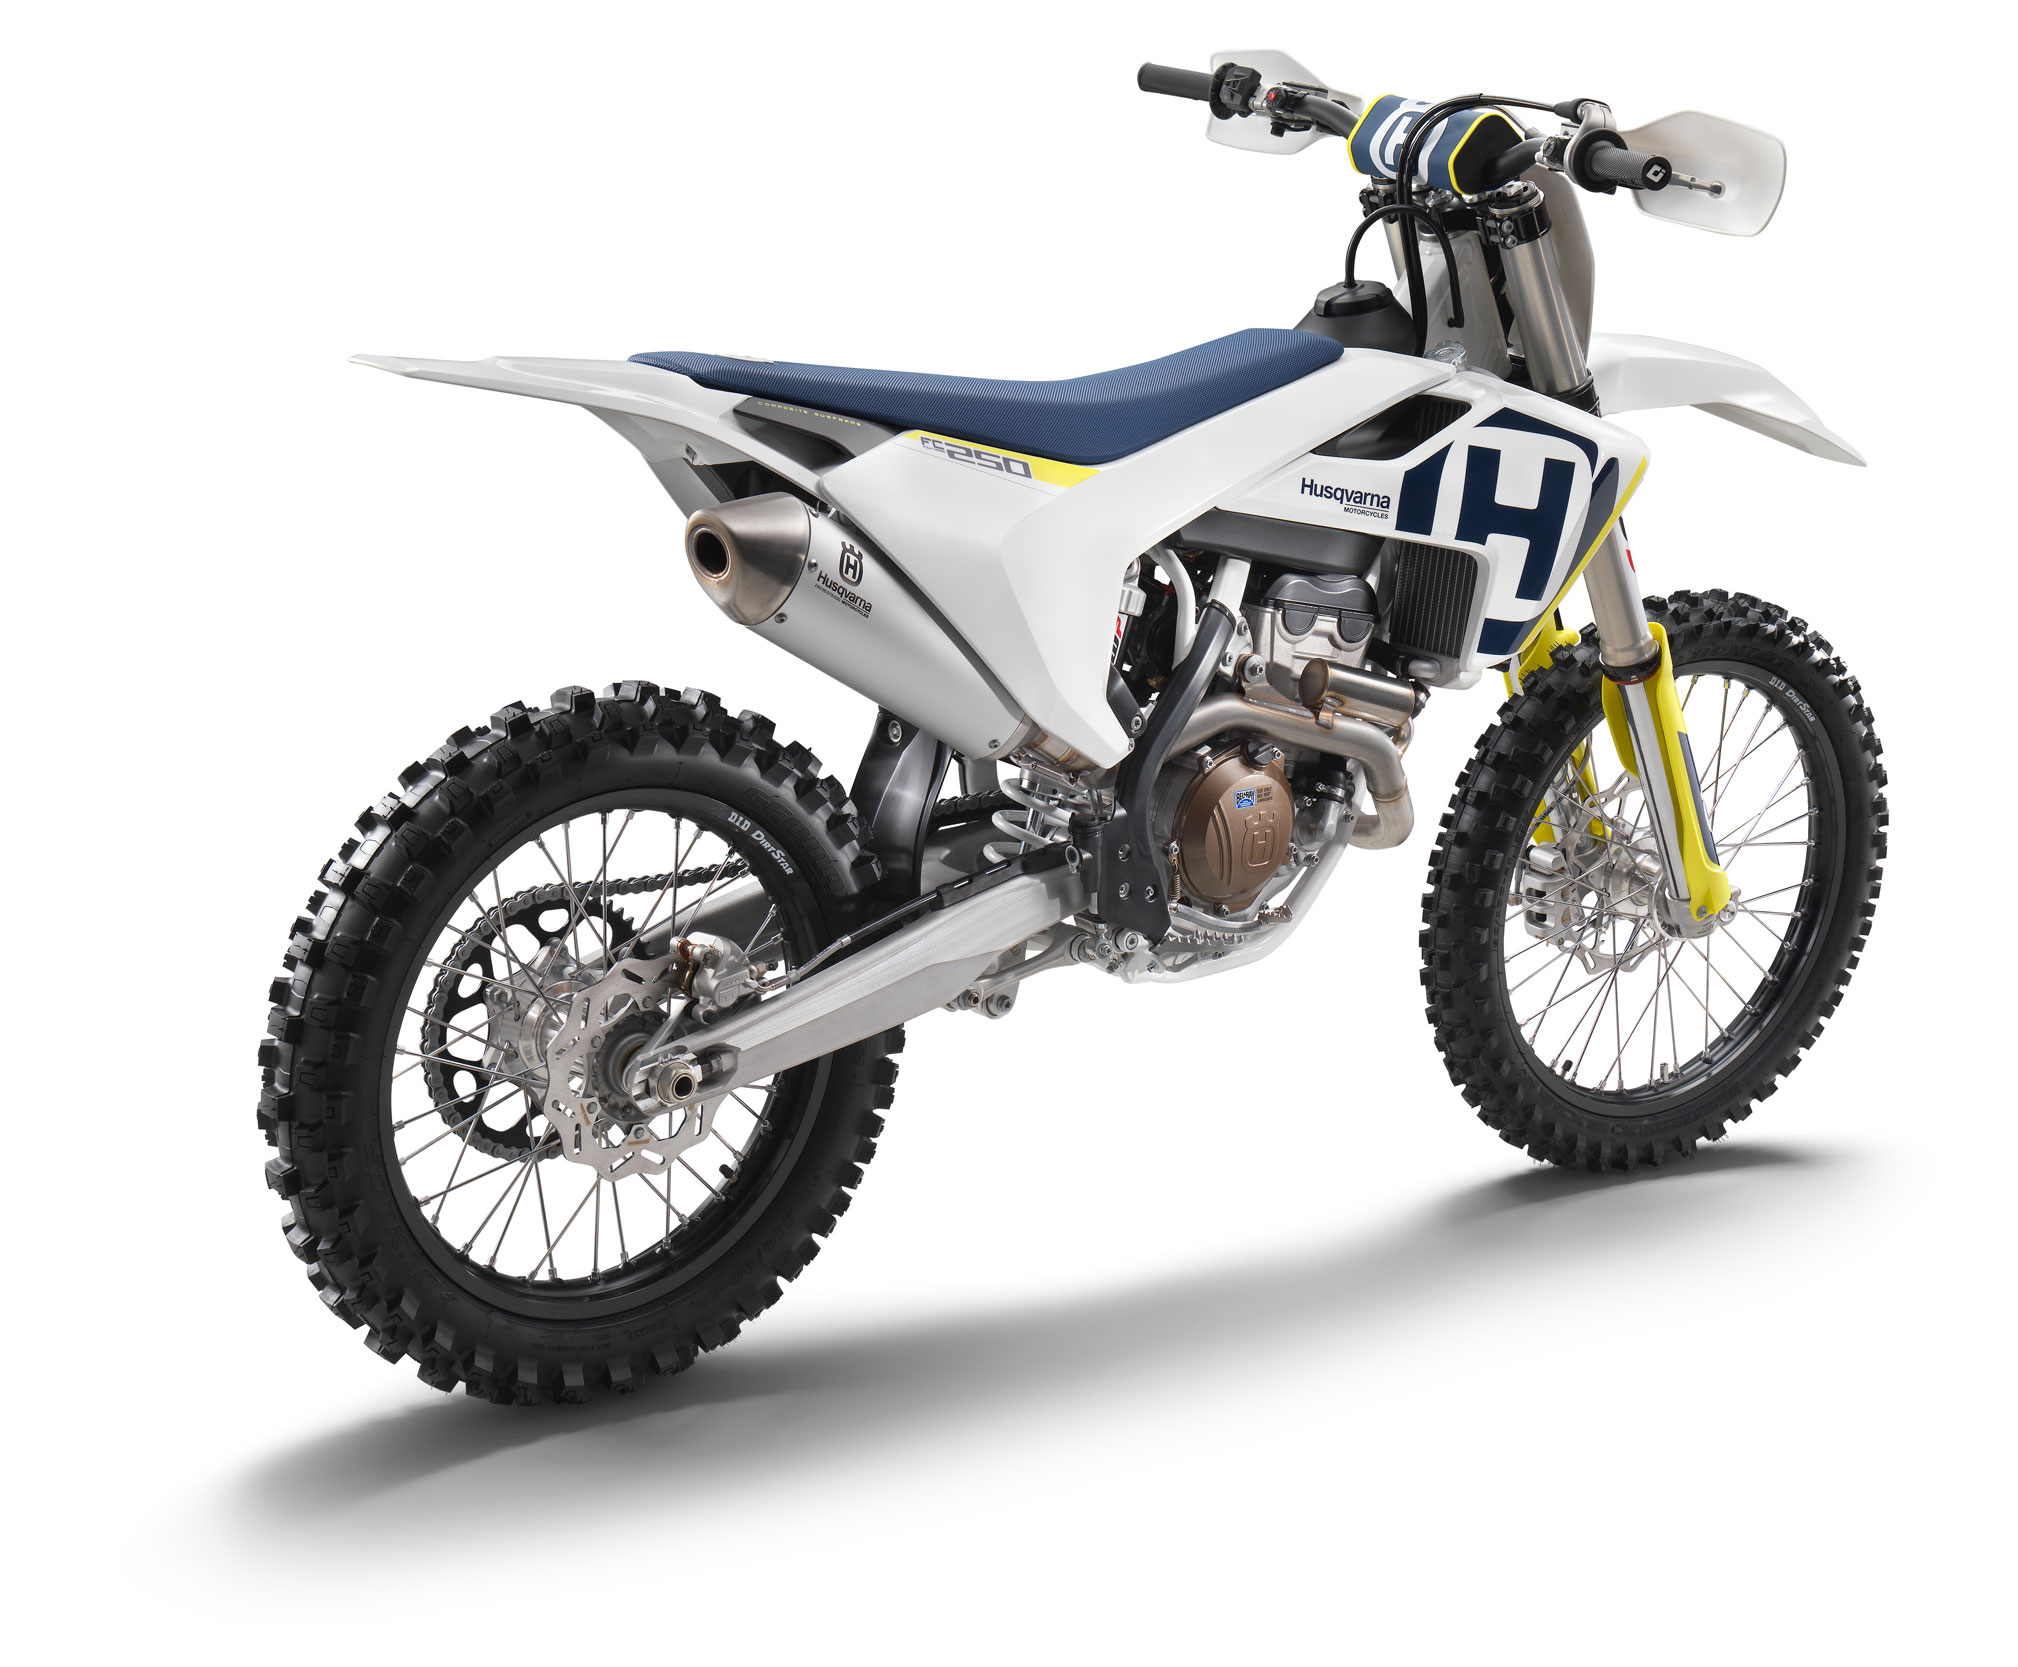 2018 Husqvarna Fc250 Review Totalmotorcycle